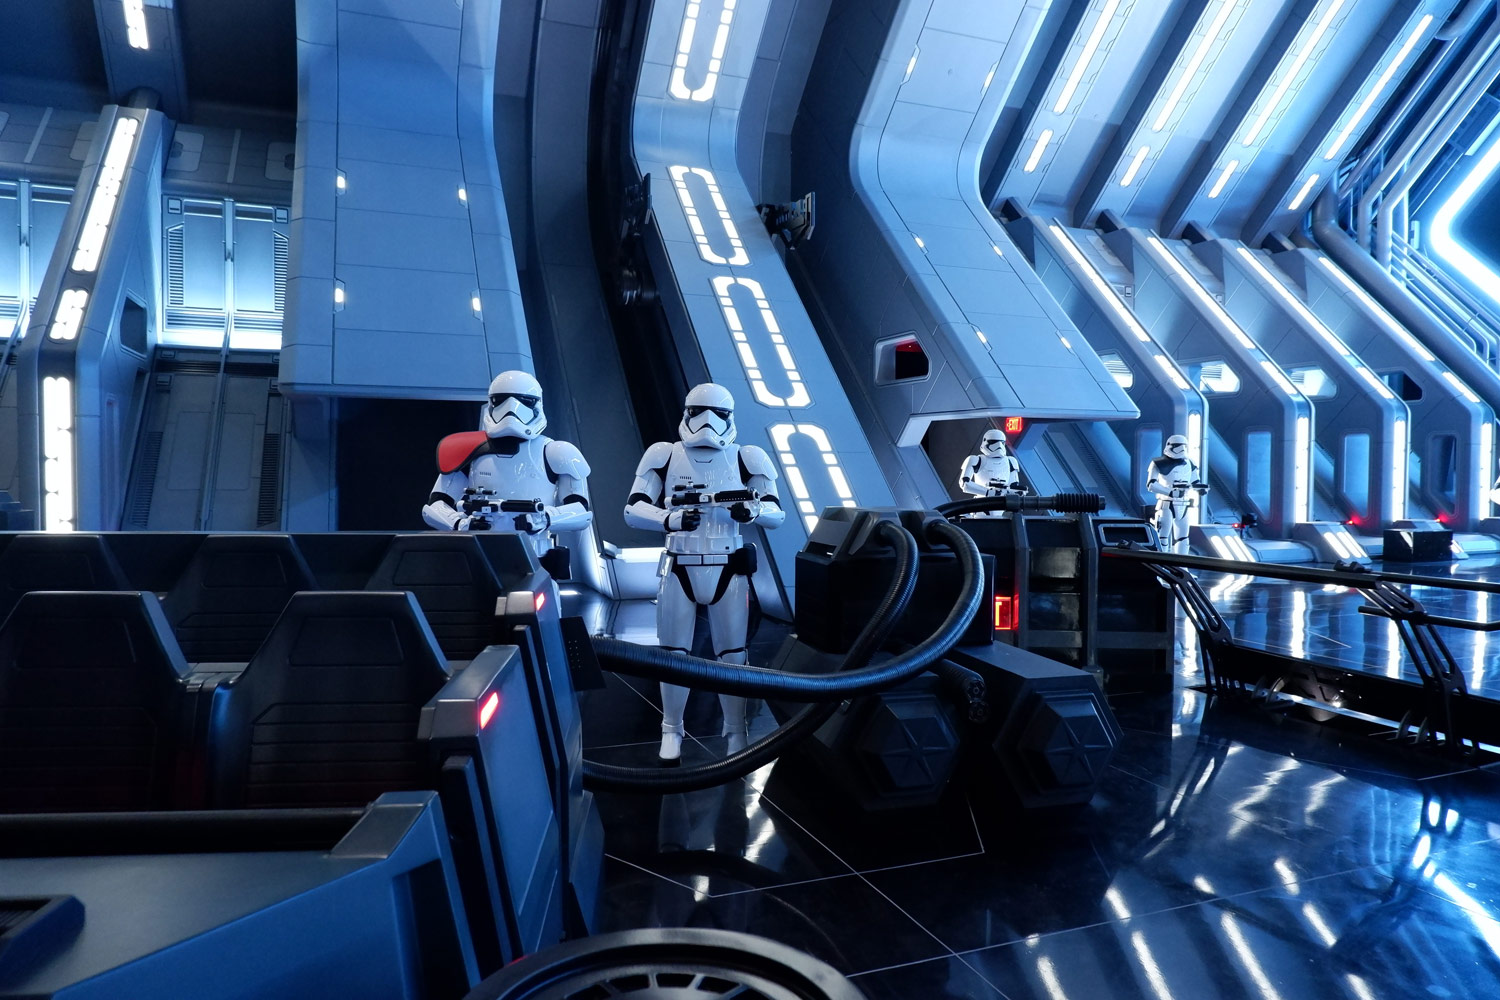 Stormtroopers greet the recruits at Star Wars: Rise of the Resistance